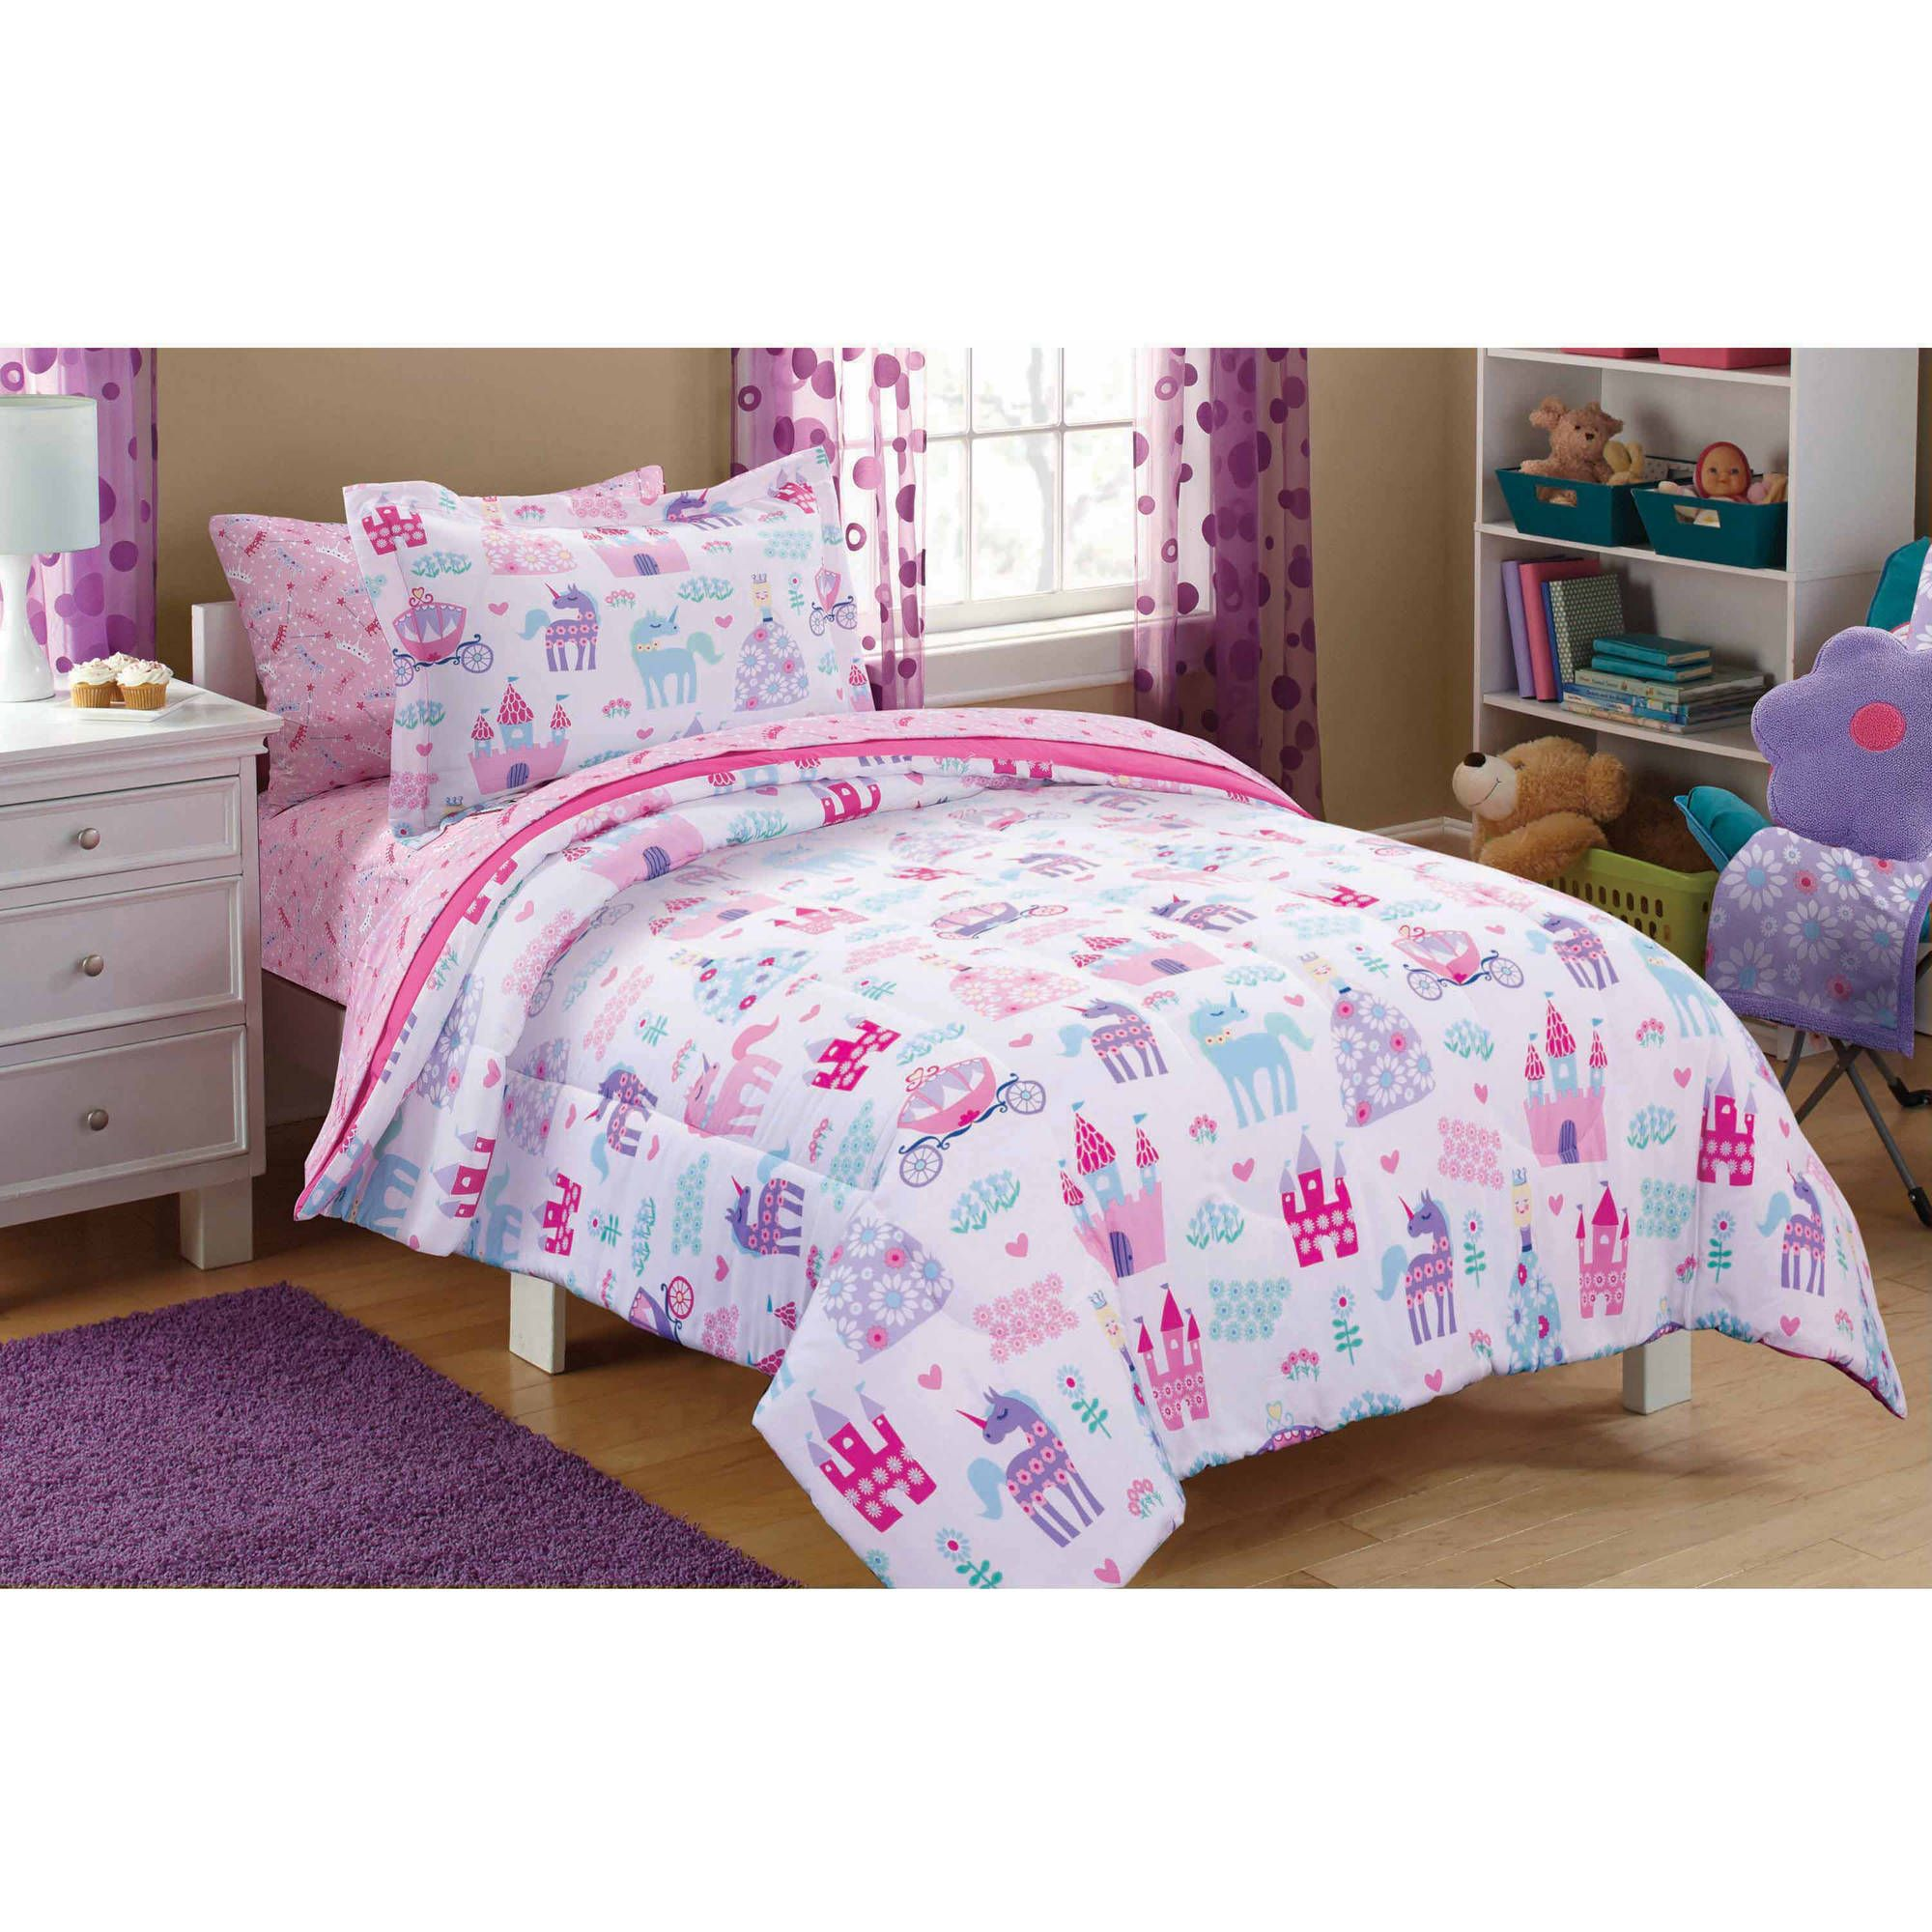 Little Boy Twin Bed Mainstays Kids Pretty Princess Bed In A Bag Bedding Set